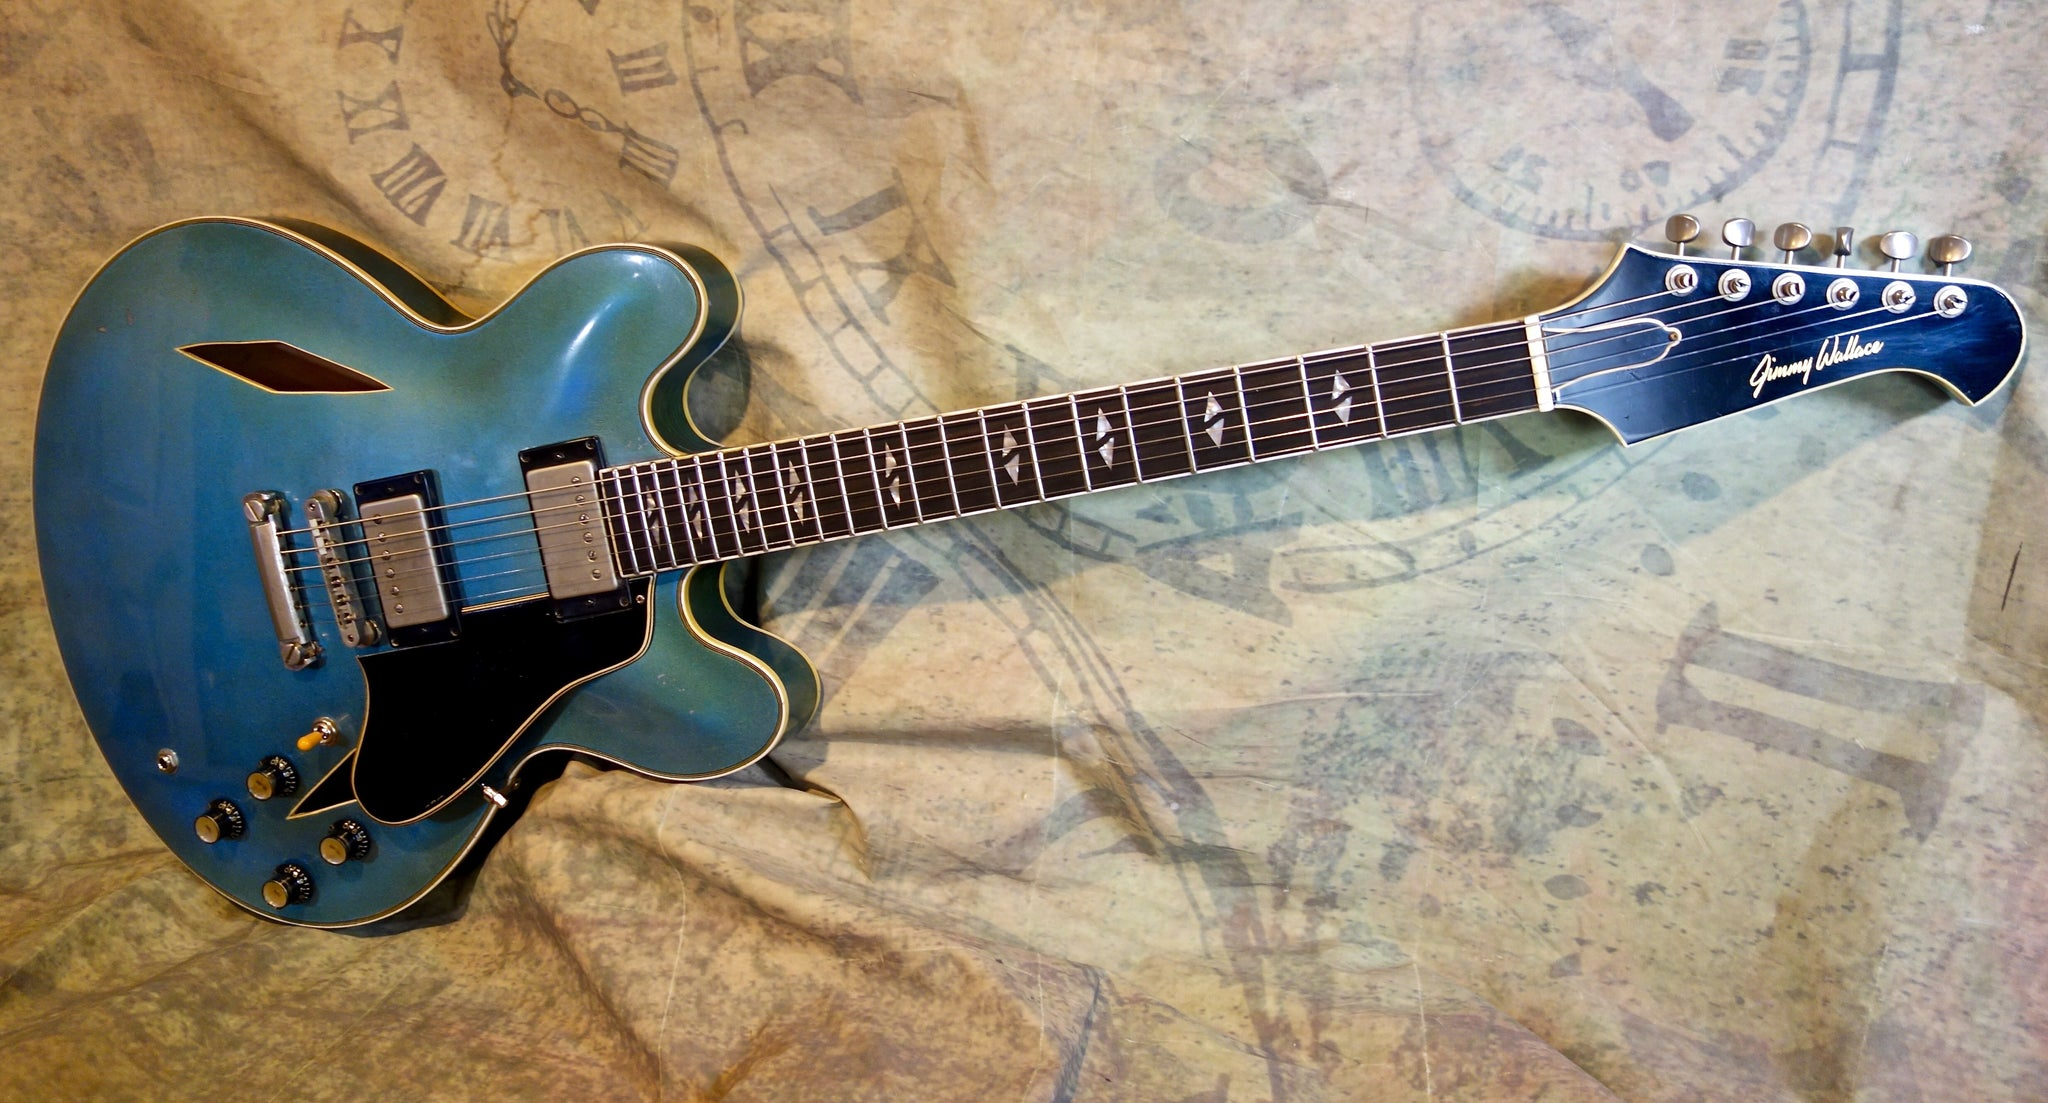 Jimmy Wallace MT  in Beautiful Authentic Aged Pelham Blue SOLD - Order one!